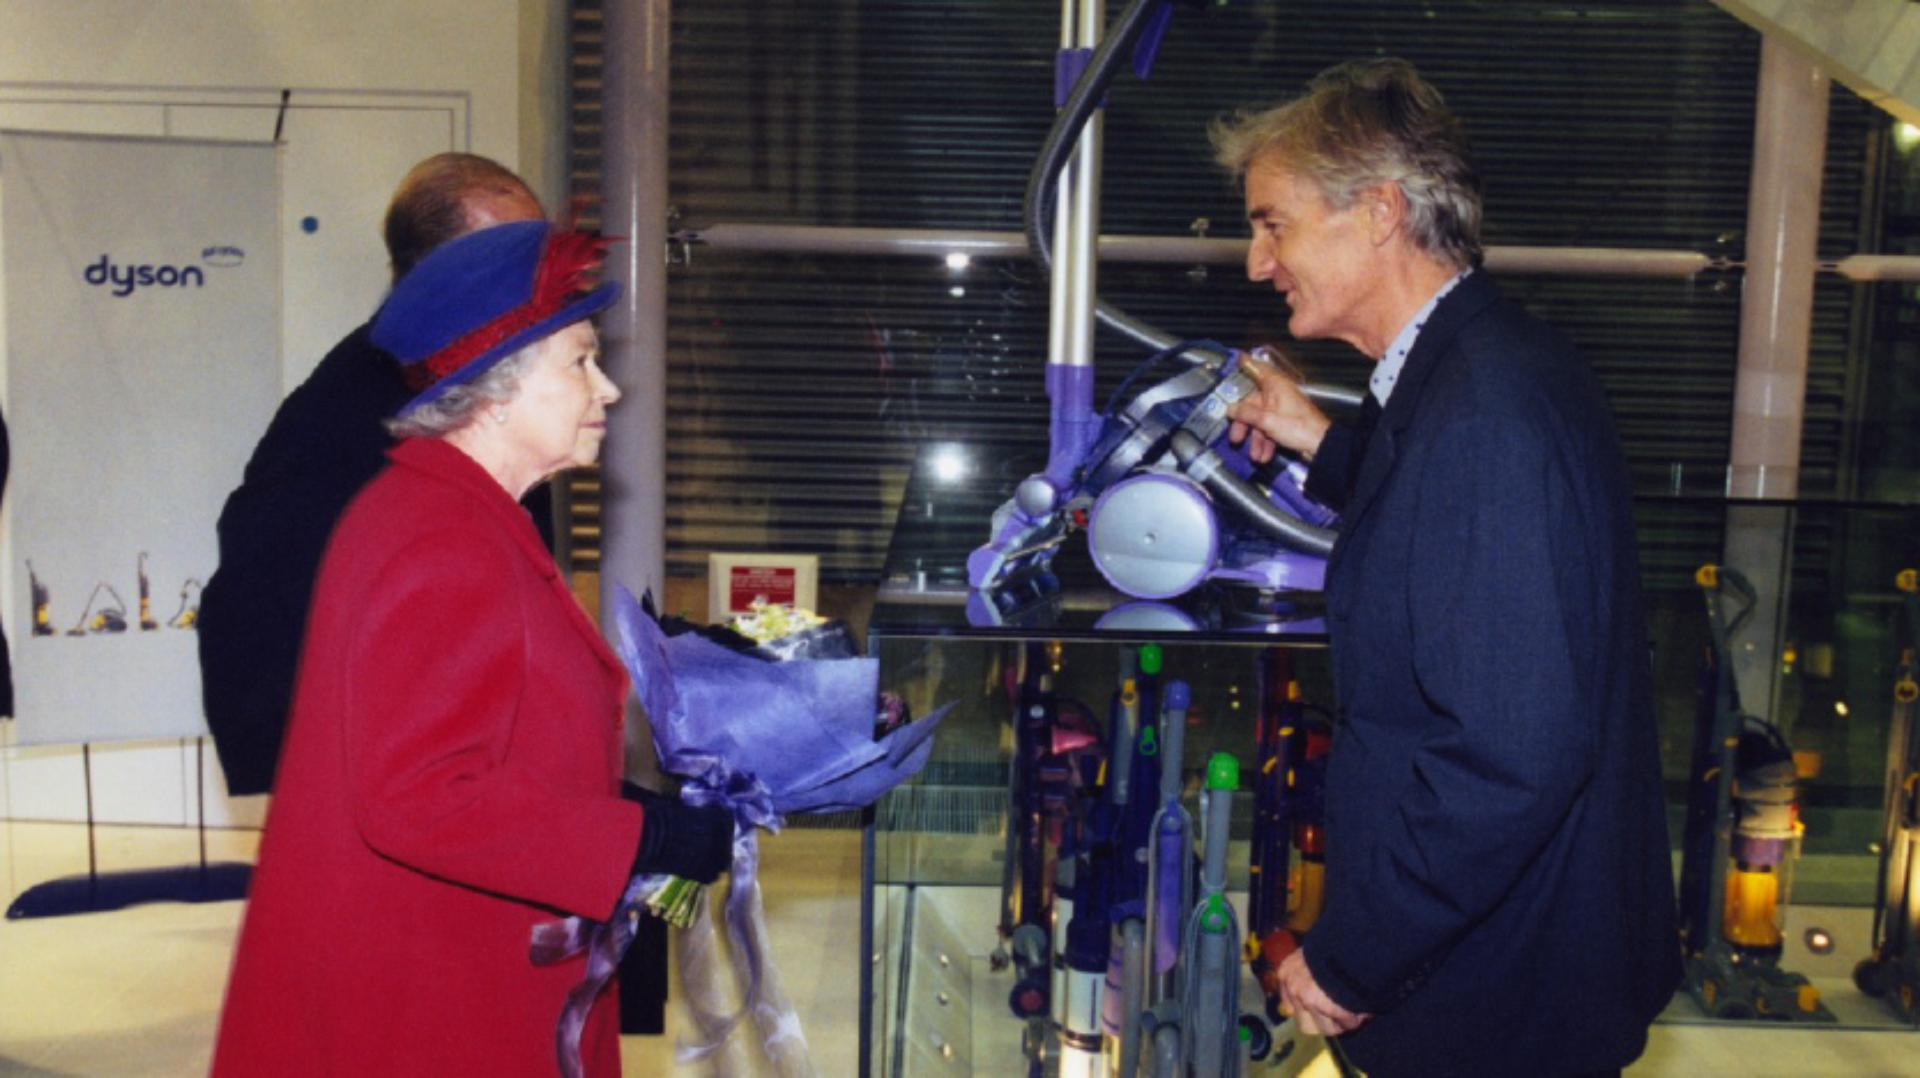 James Dyson meeting The Queen and The Duke of Edinburgh, 2001